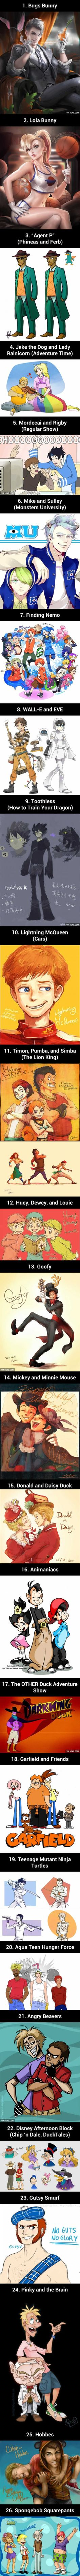 26 Non-Human Cartoon Characters As Humans Will Blow Your Mind